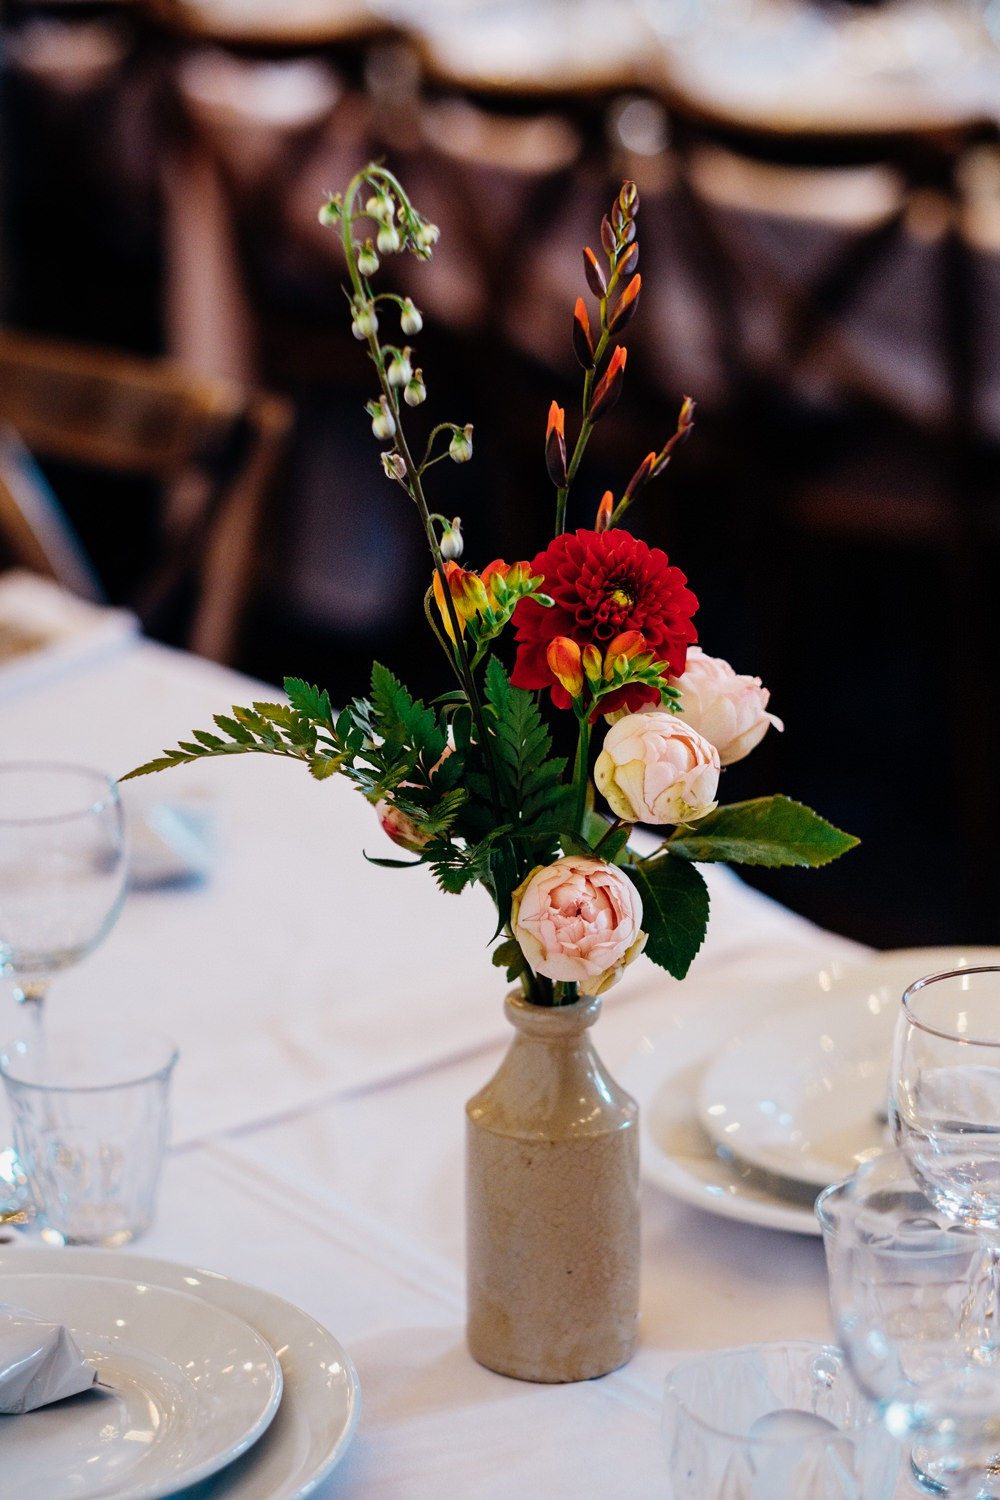 Table Flowers Centrepiece Decor Bottle Vases East London Wedding Marianne Chua Photography